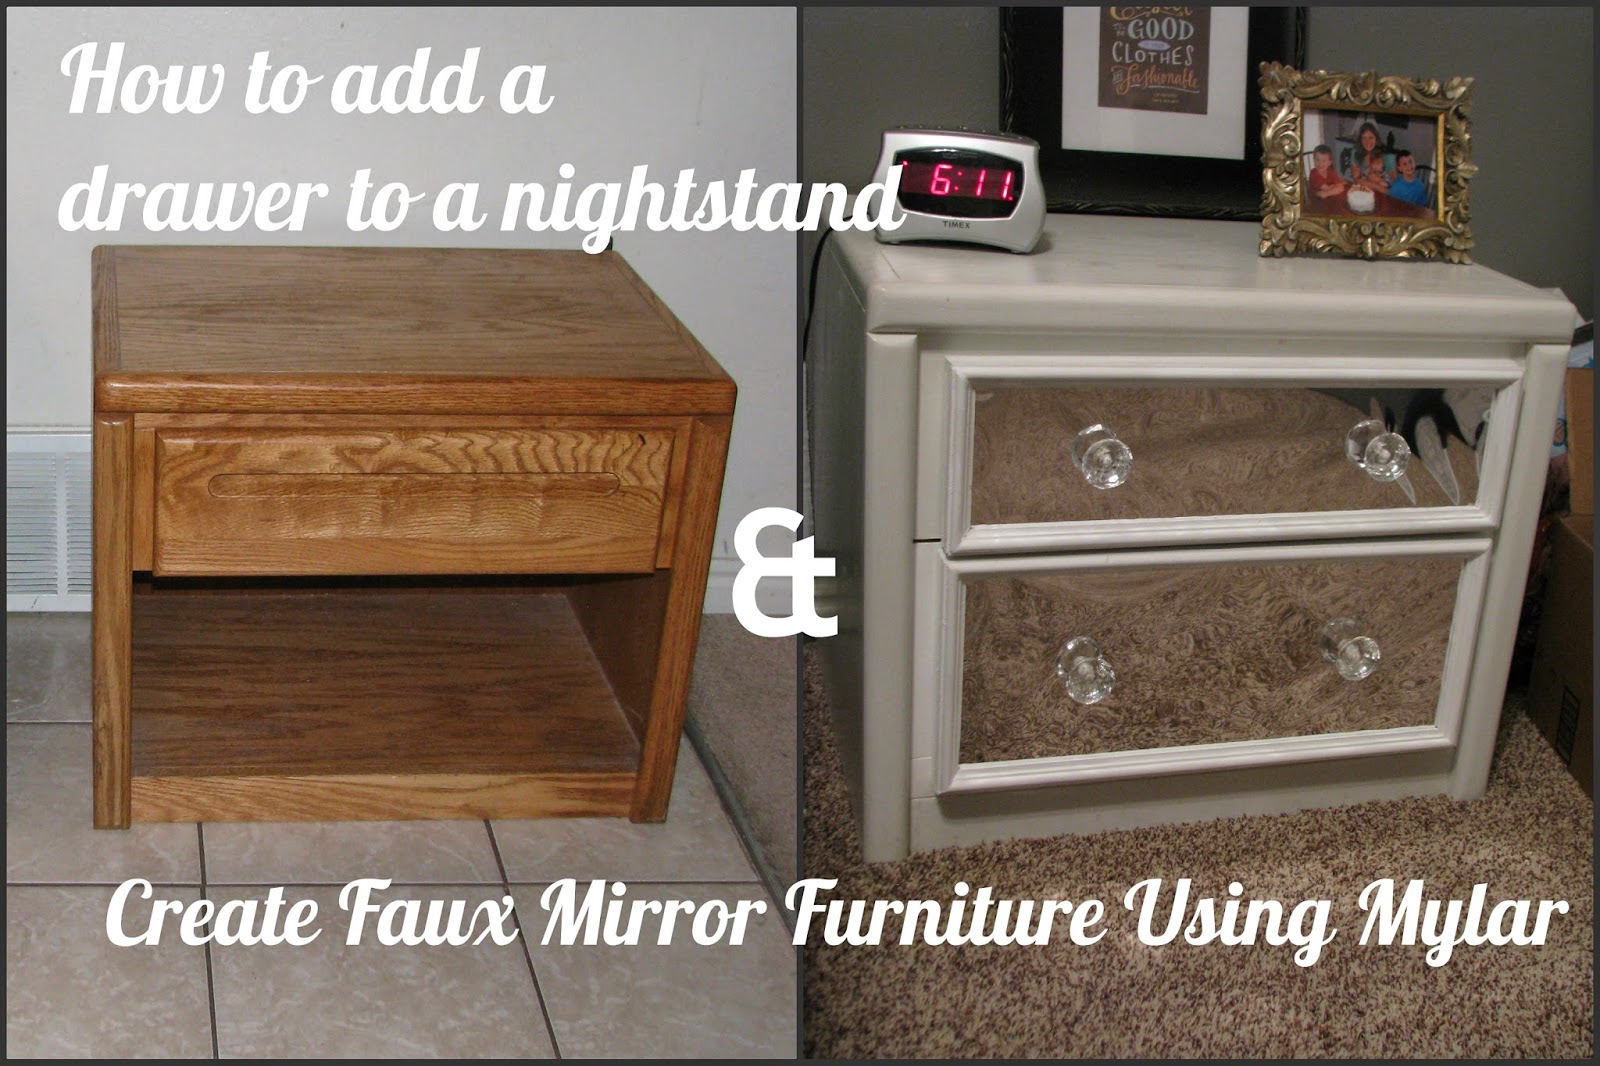 http://www.mysocalleddiyblog.com/2015/01/how-to-add-drawer-to-nightstand-create.html